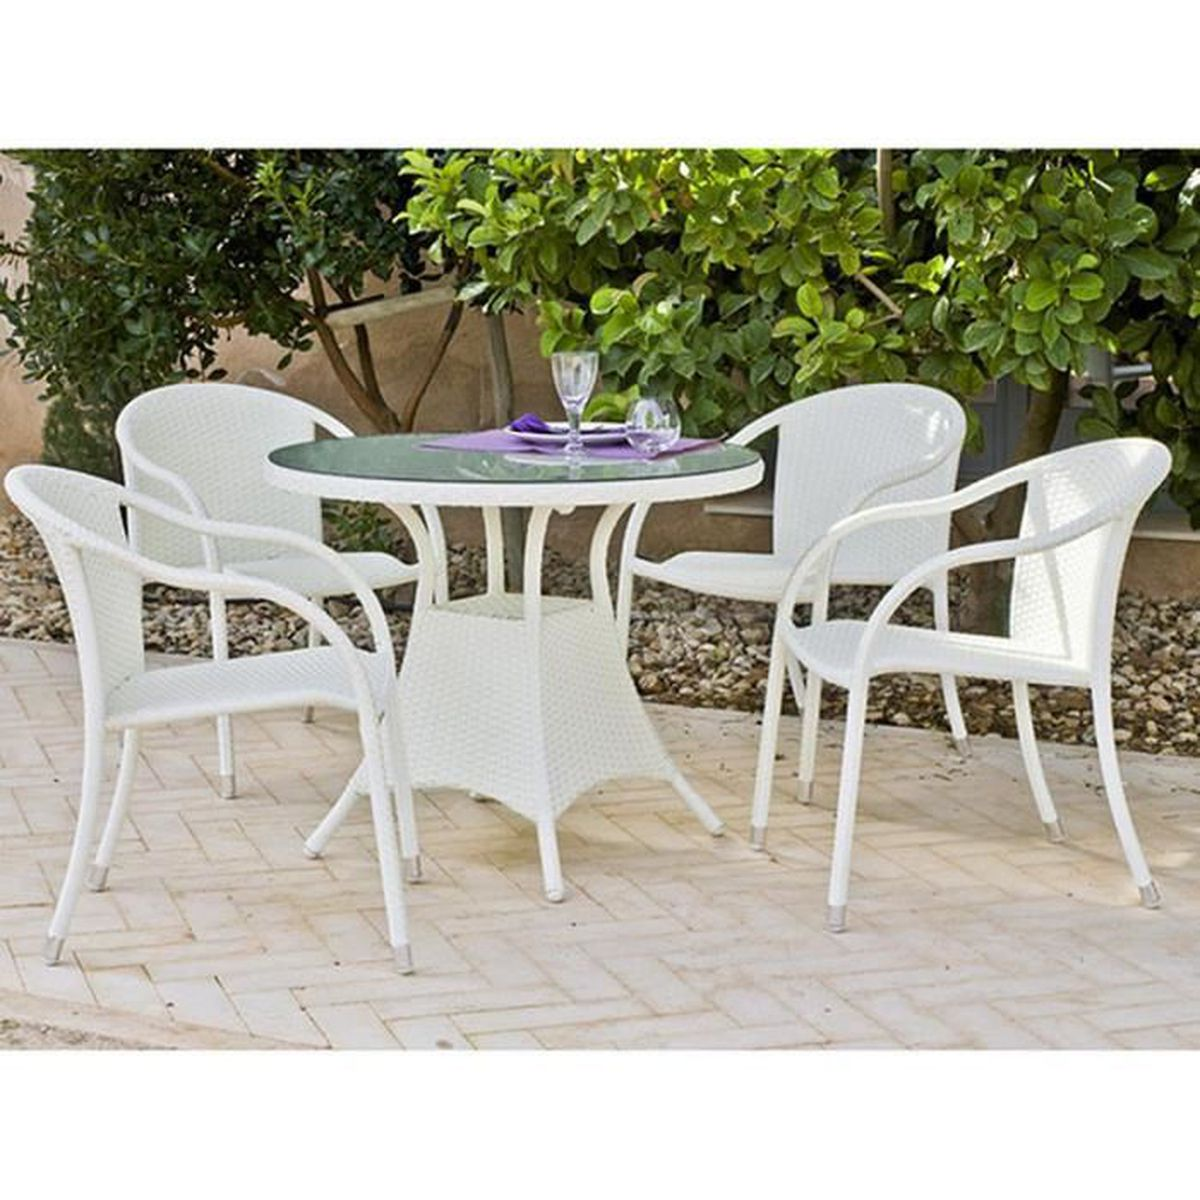 ensemble de table et 4 chaises de jardin calblanc 90 4 achat vente salon de jardin ensemble. Black Bedroom Furniture Sets. Home Design Ideas